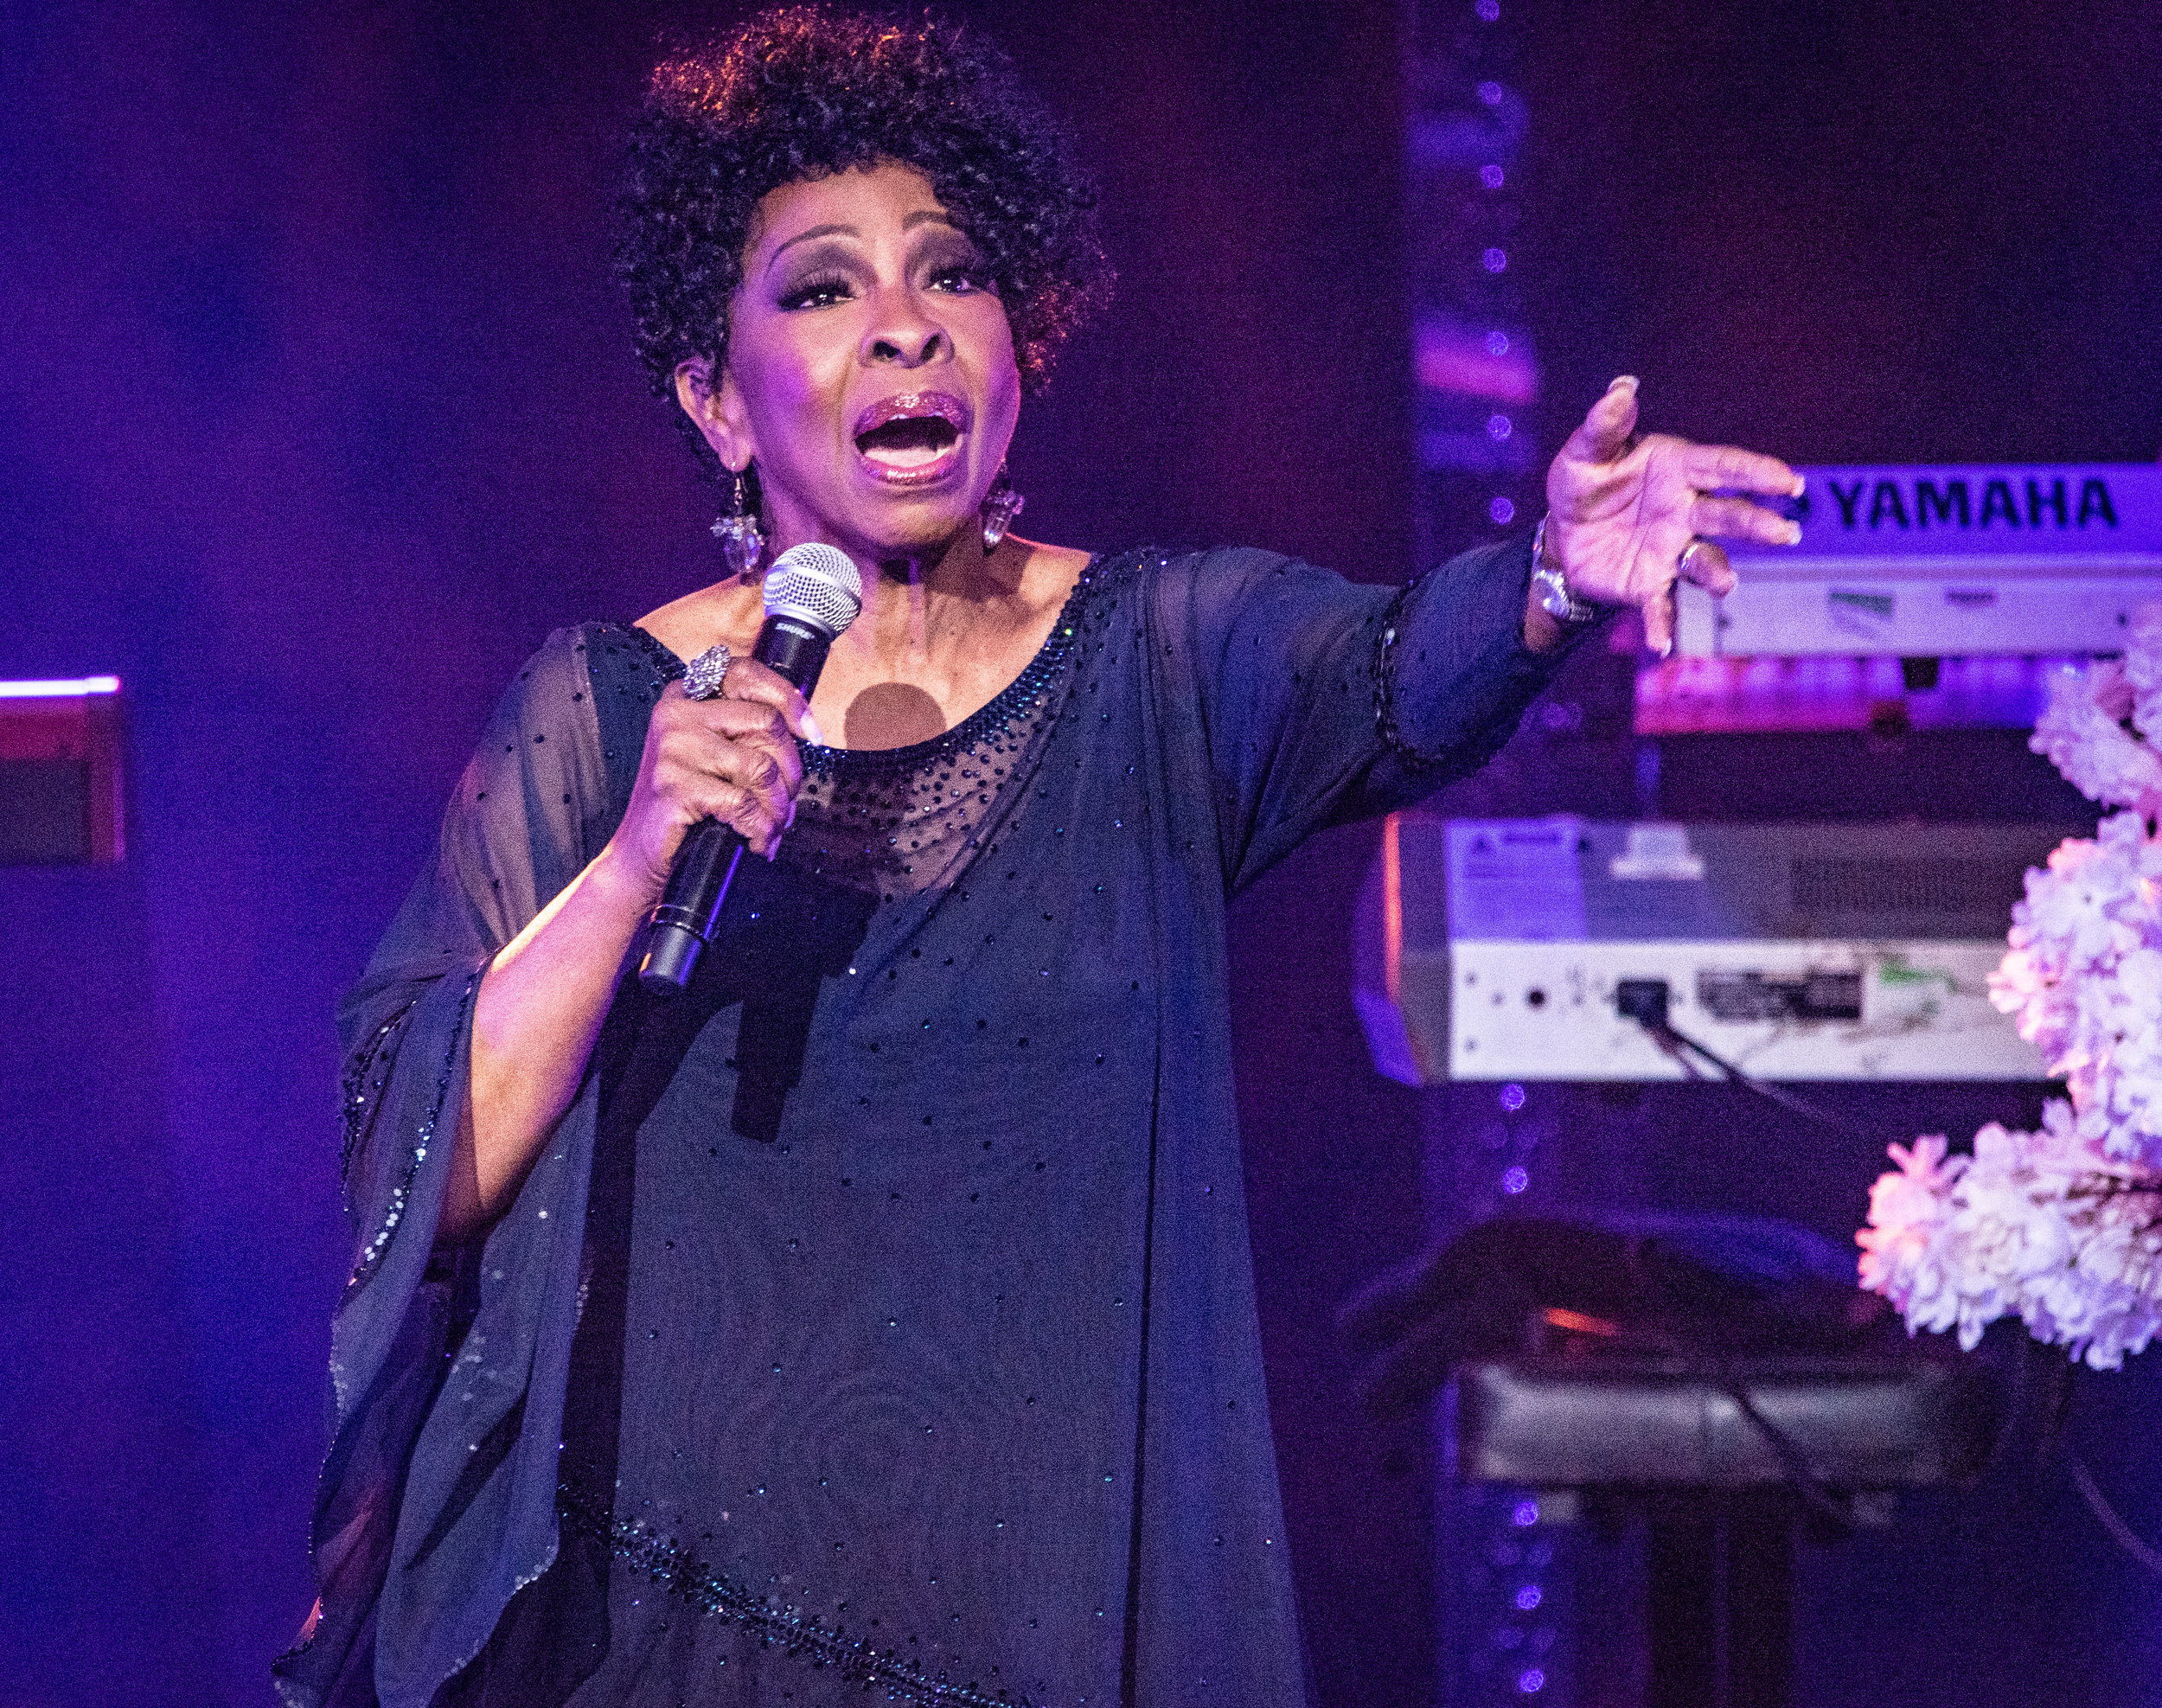 GLADYS KNIGHT PERFORMING AT GLASGOW'S ROYAL CONCERT HALL - 01.07.2019  PICTURE BY: CALUM BUCHAN PHOTOGRAPHY